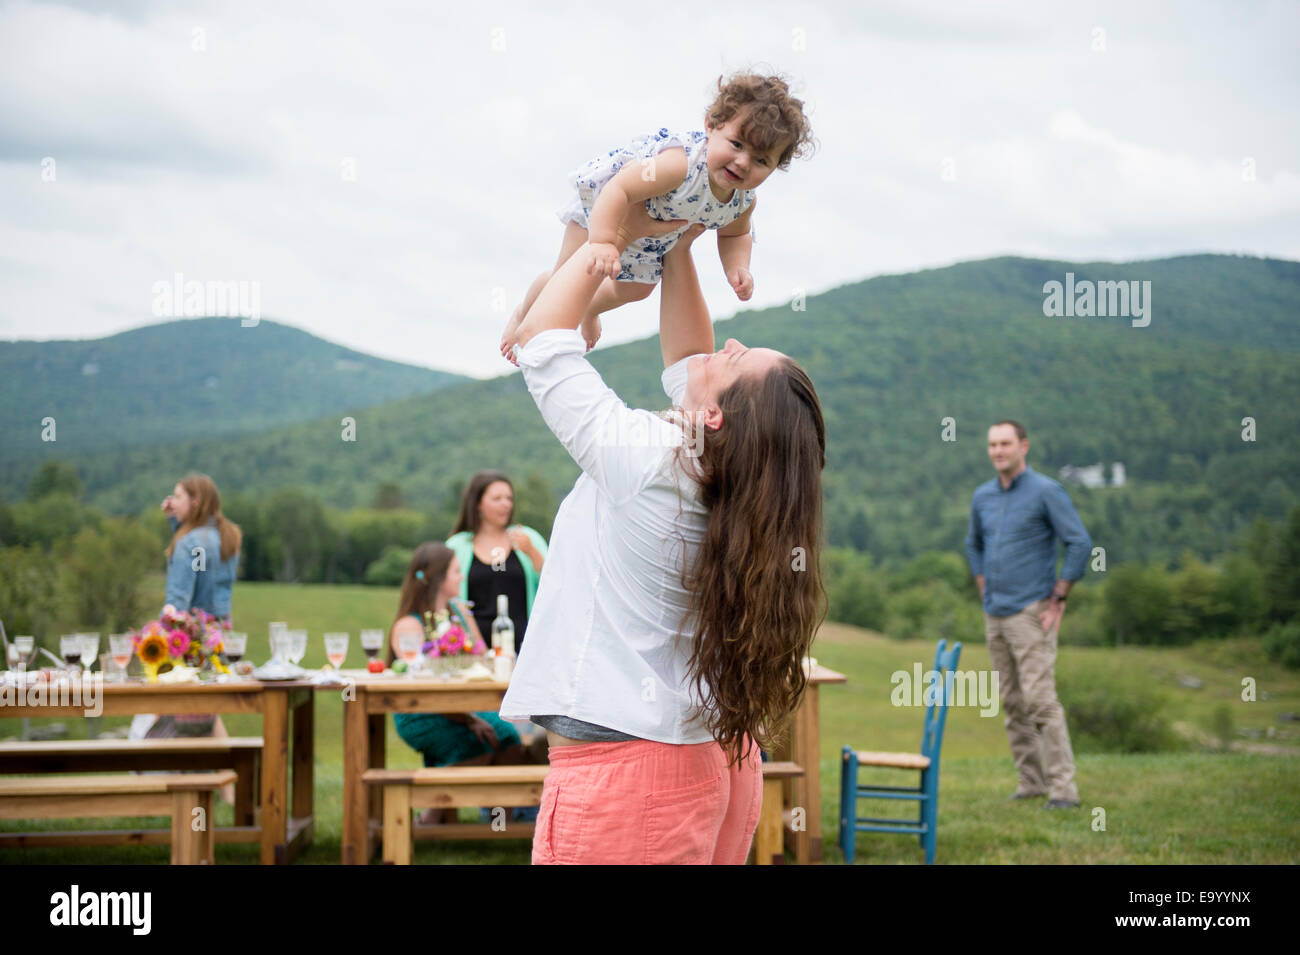 Mid adult woman holding baby girl in air at family gathering, outdoors - Stock Image